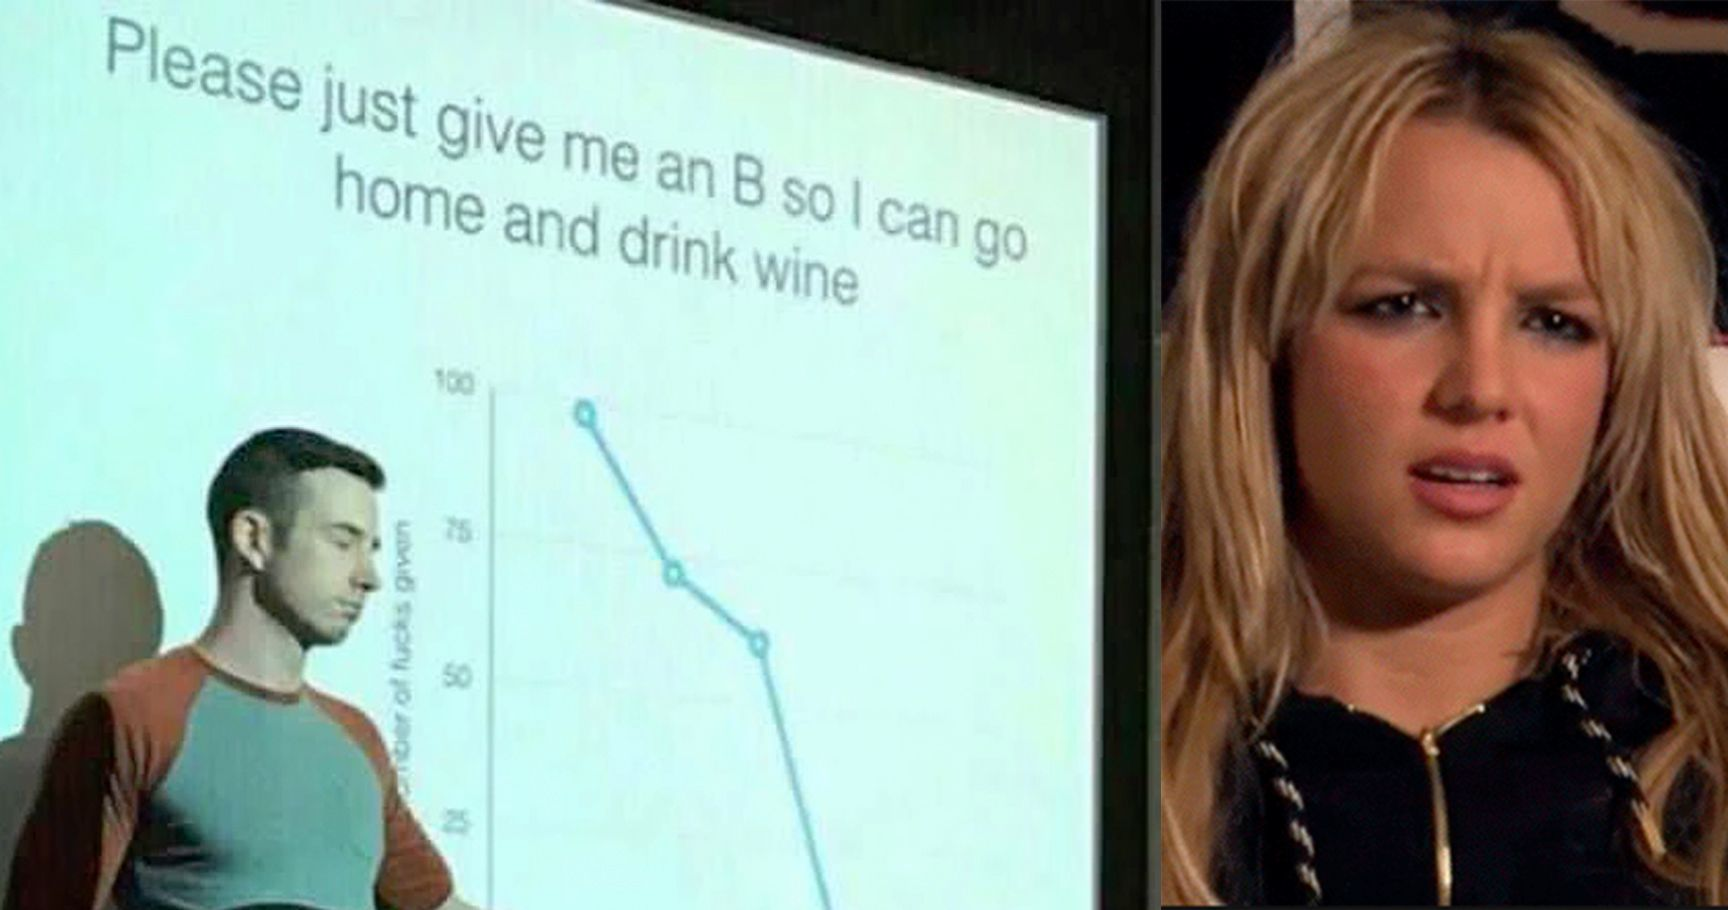 15 Hilariously Inappropriate Class Presentations That Have No Business Being Presented In School